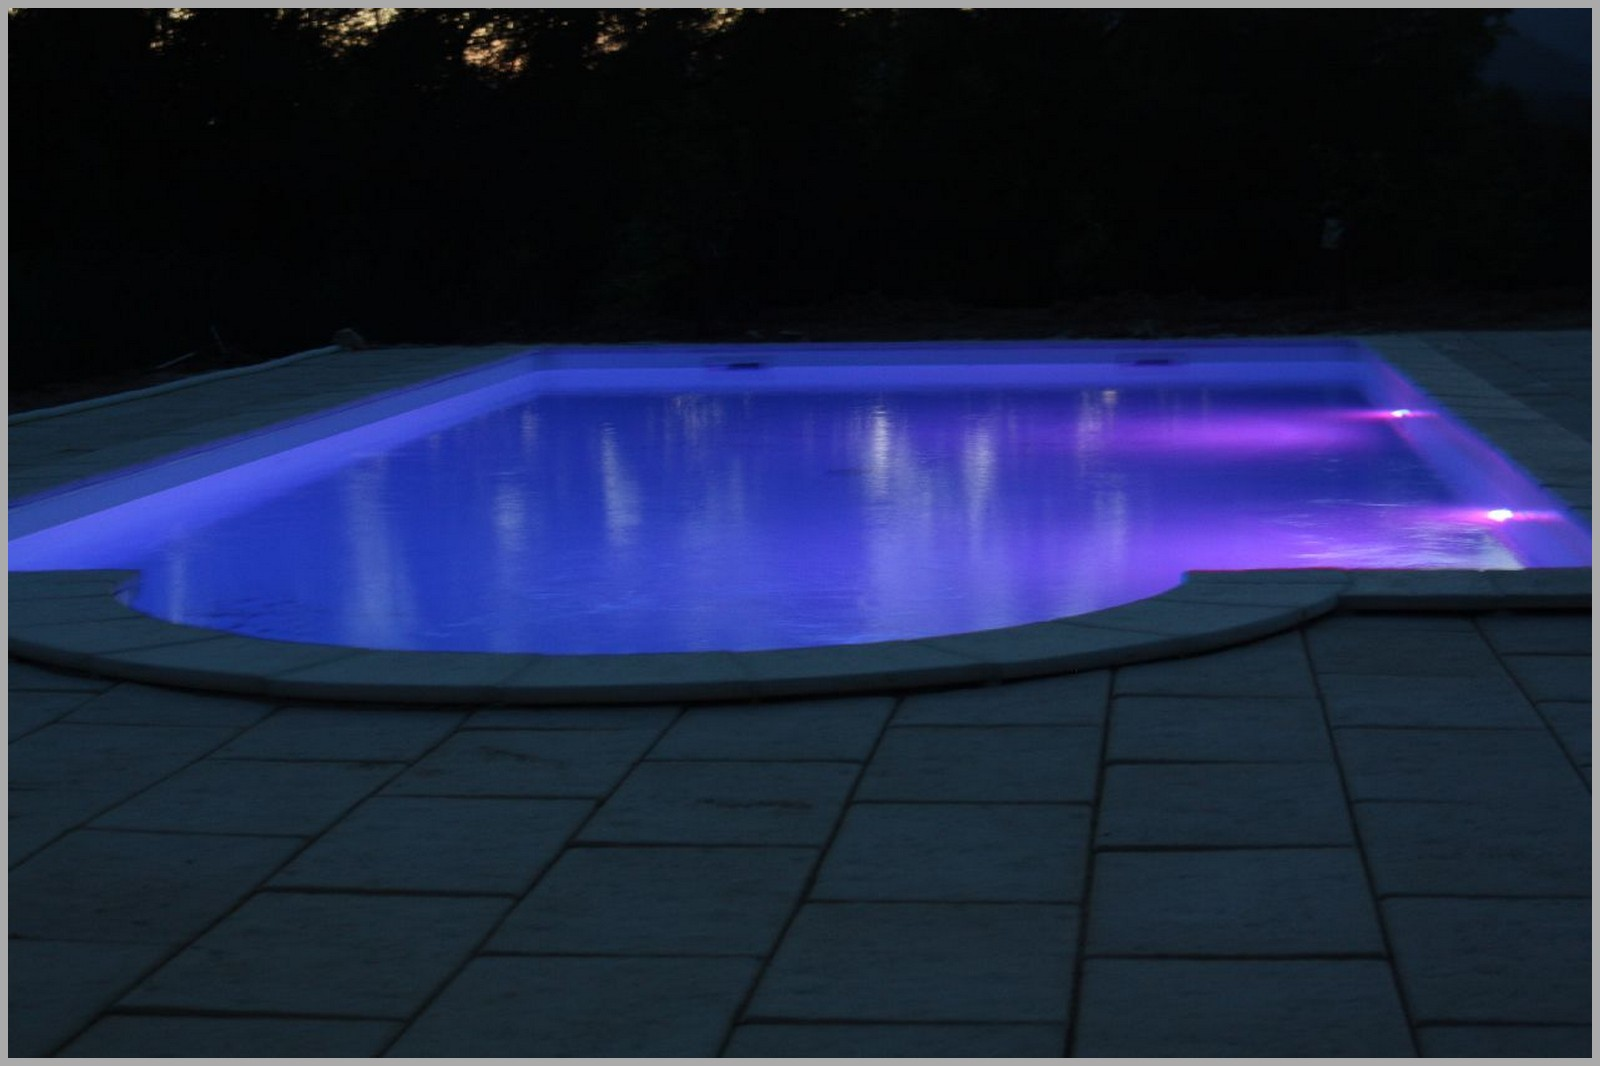 Projecteur Led Rgb Exterieur Eclairage Piscine Bandeau Led